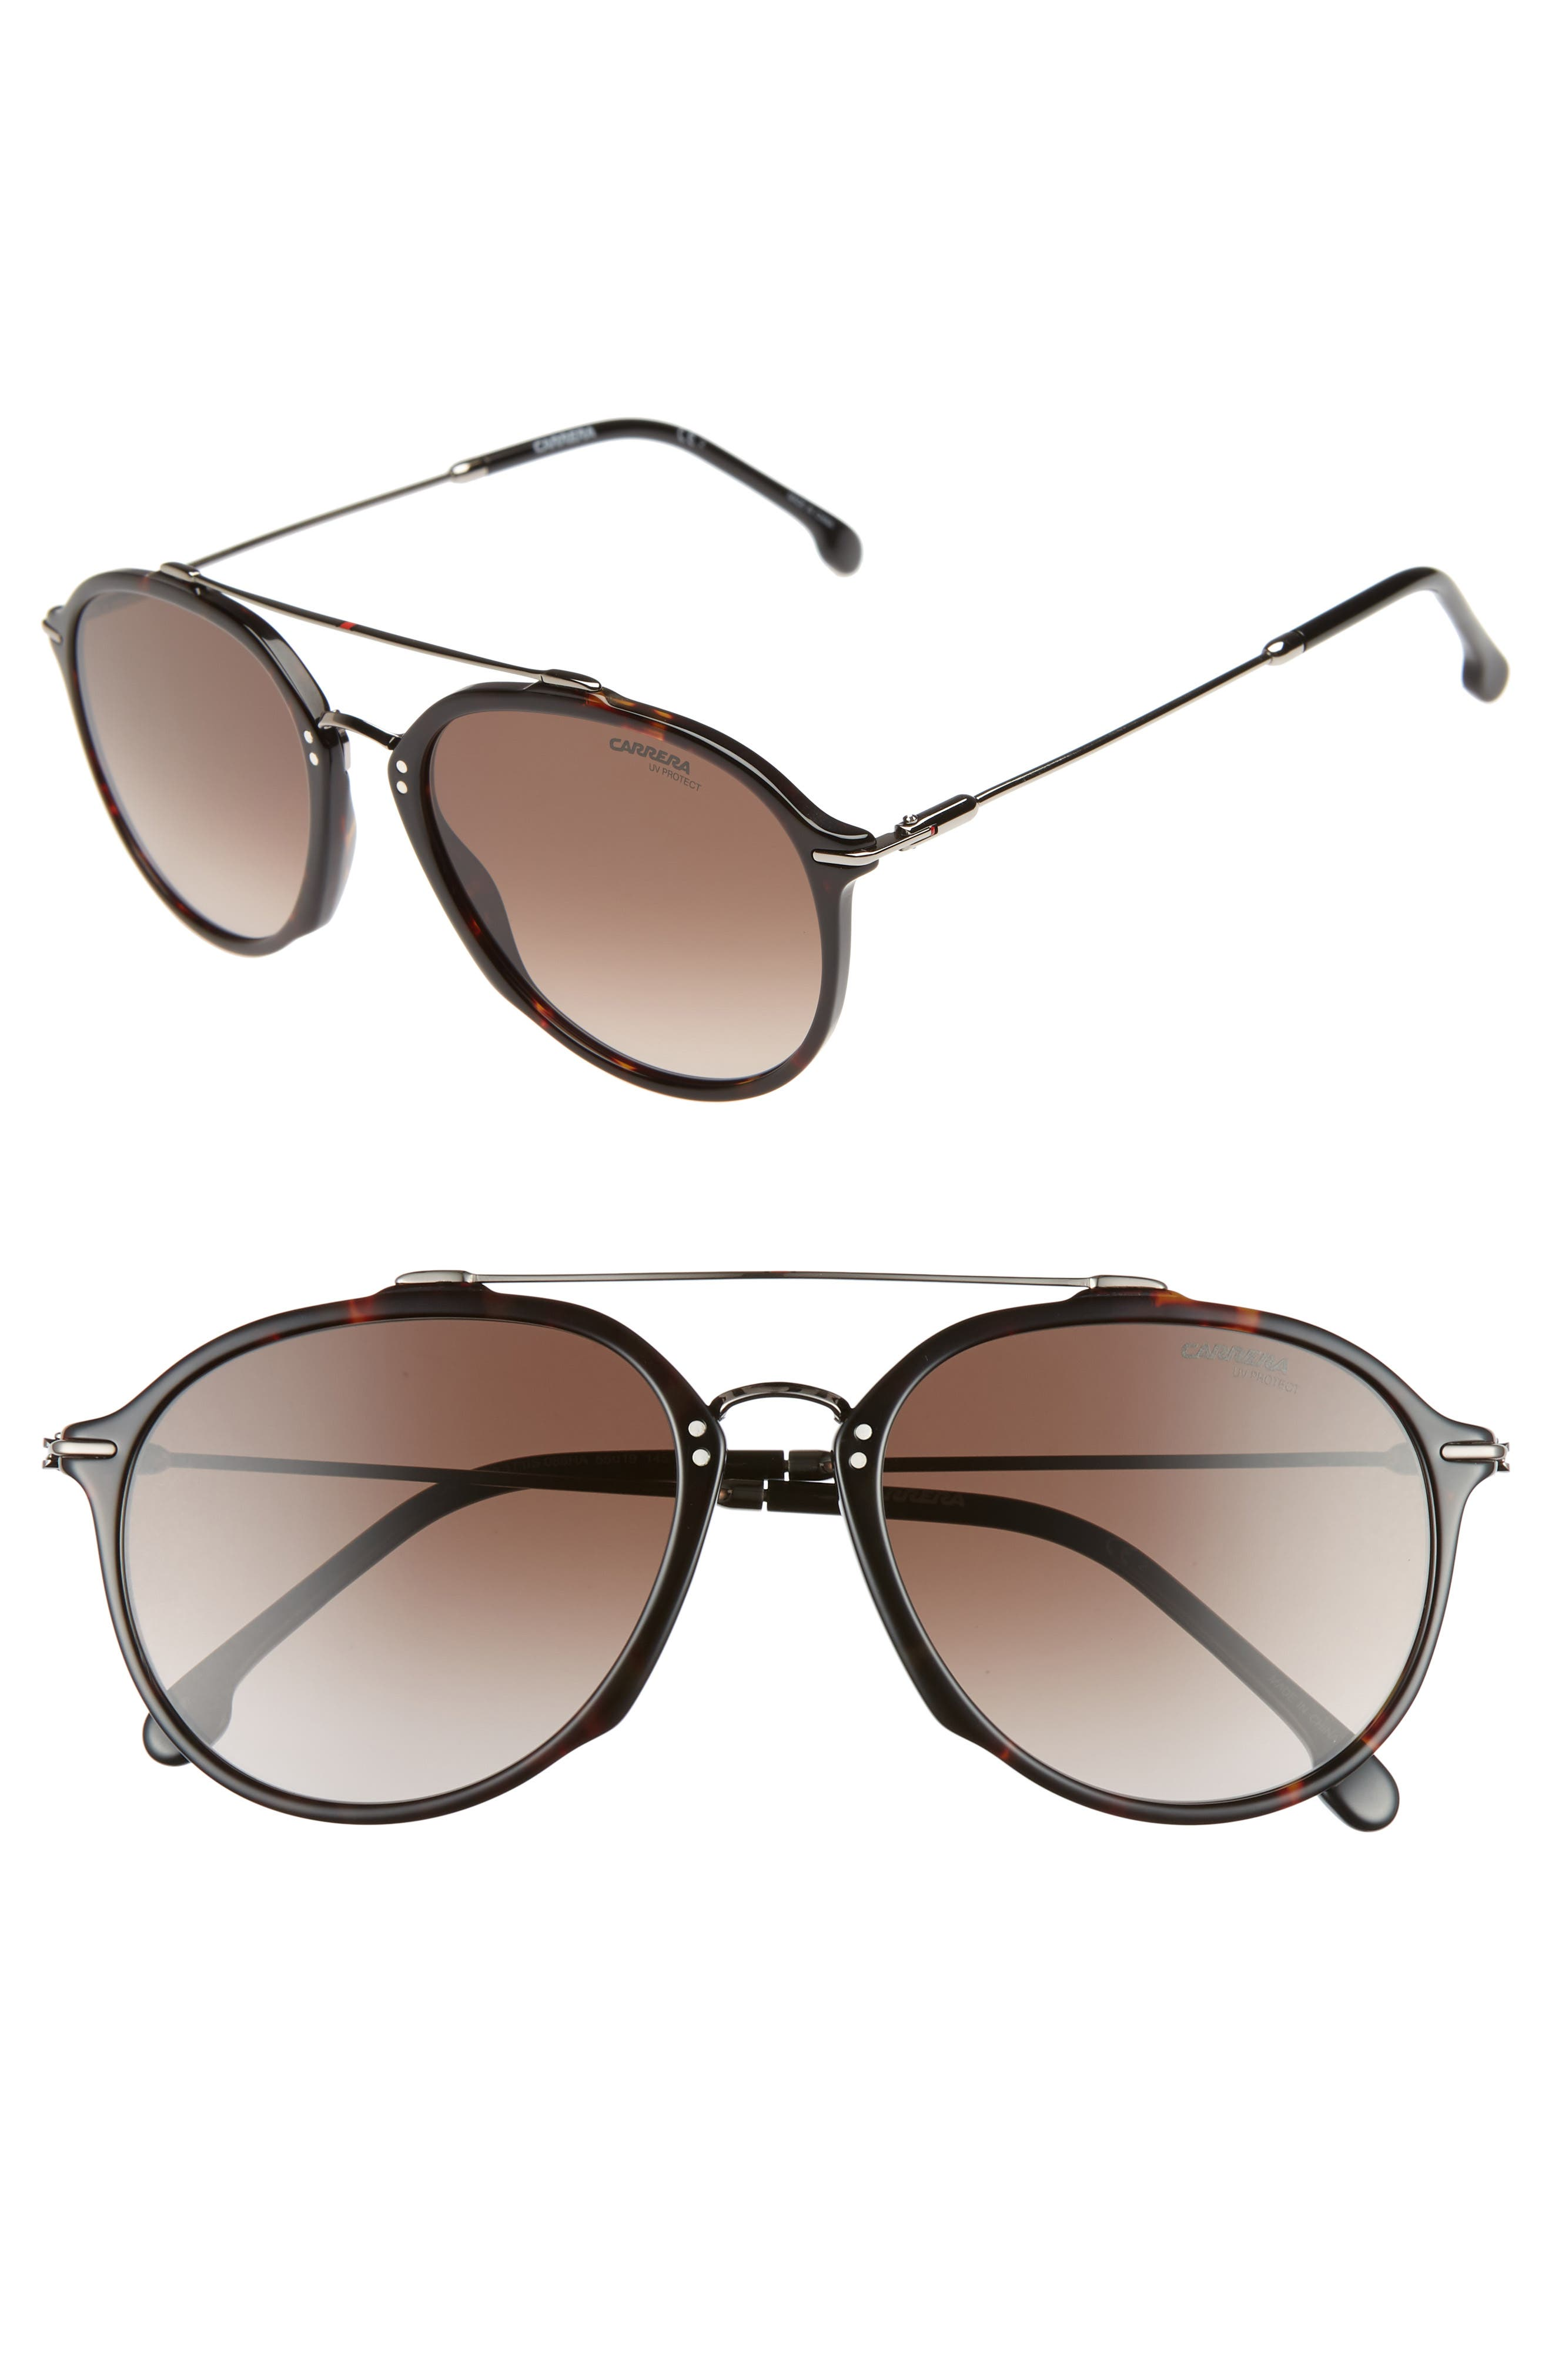 Carrera Eyewear 55Mm Round Sunglasses -